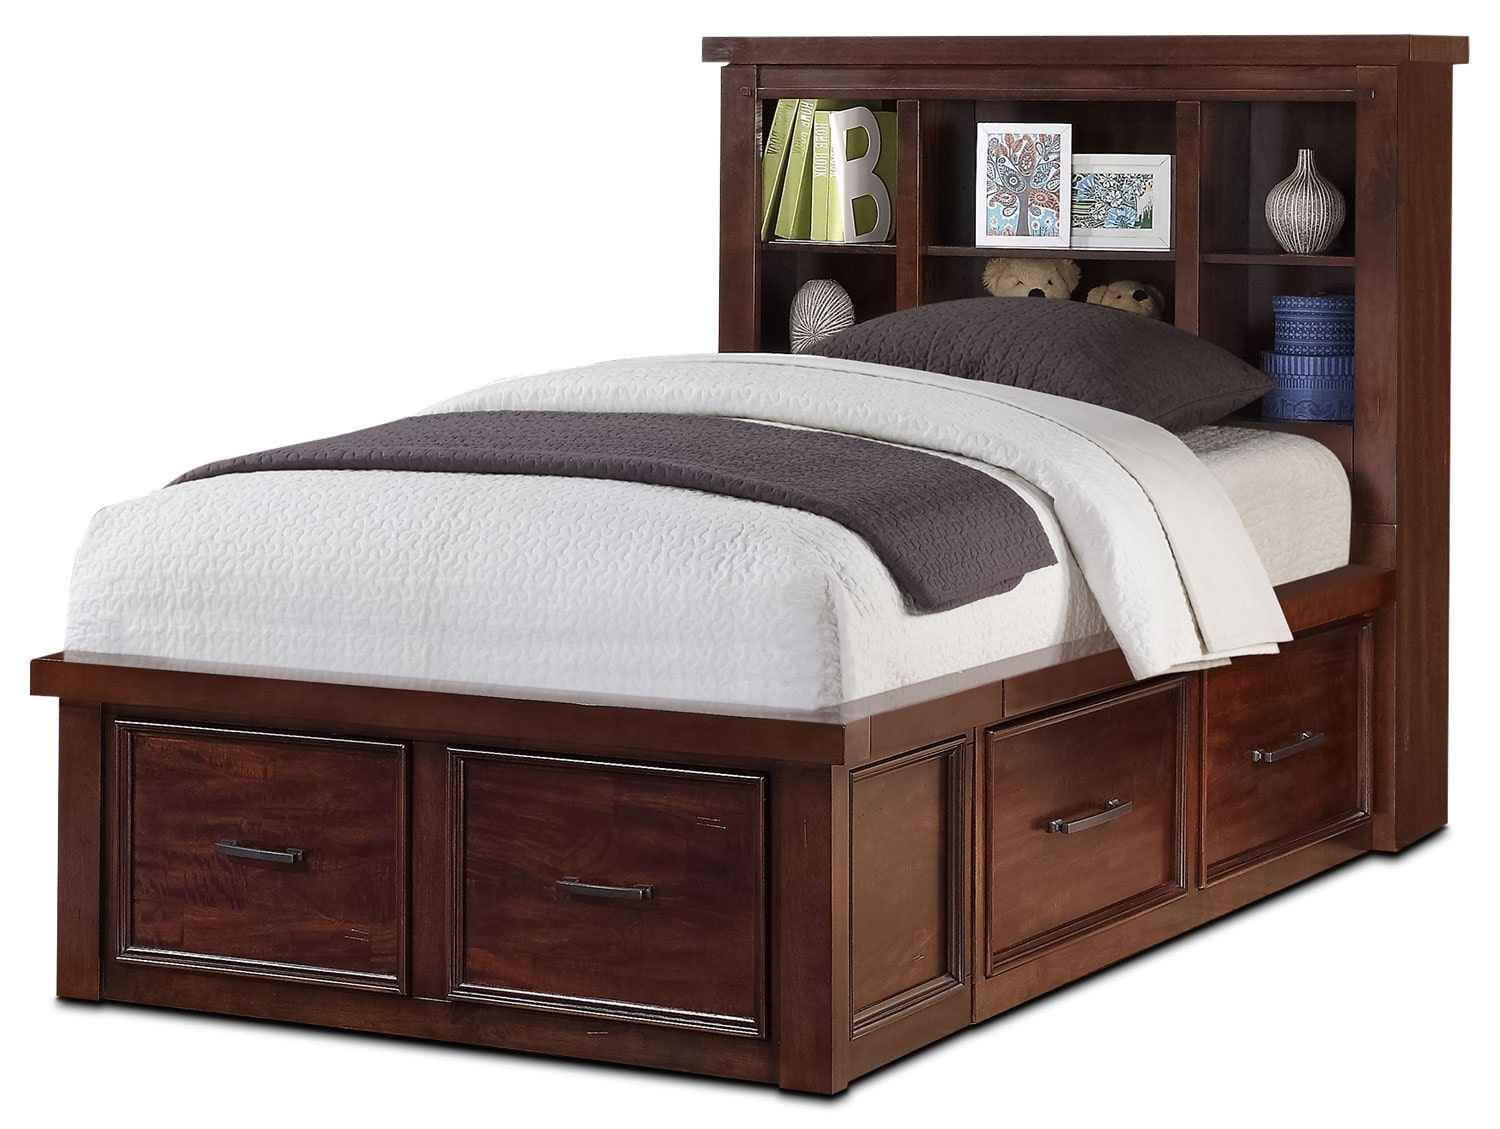 Kids Furniture - Sonoma Youth Full Bookcase Storage Bed